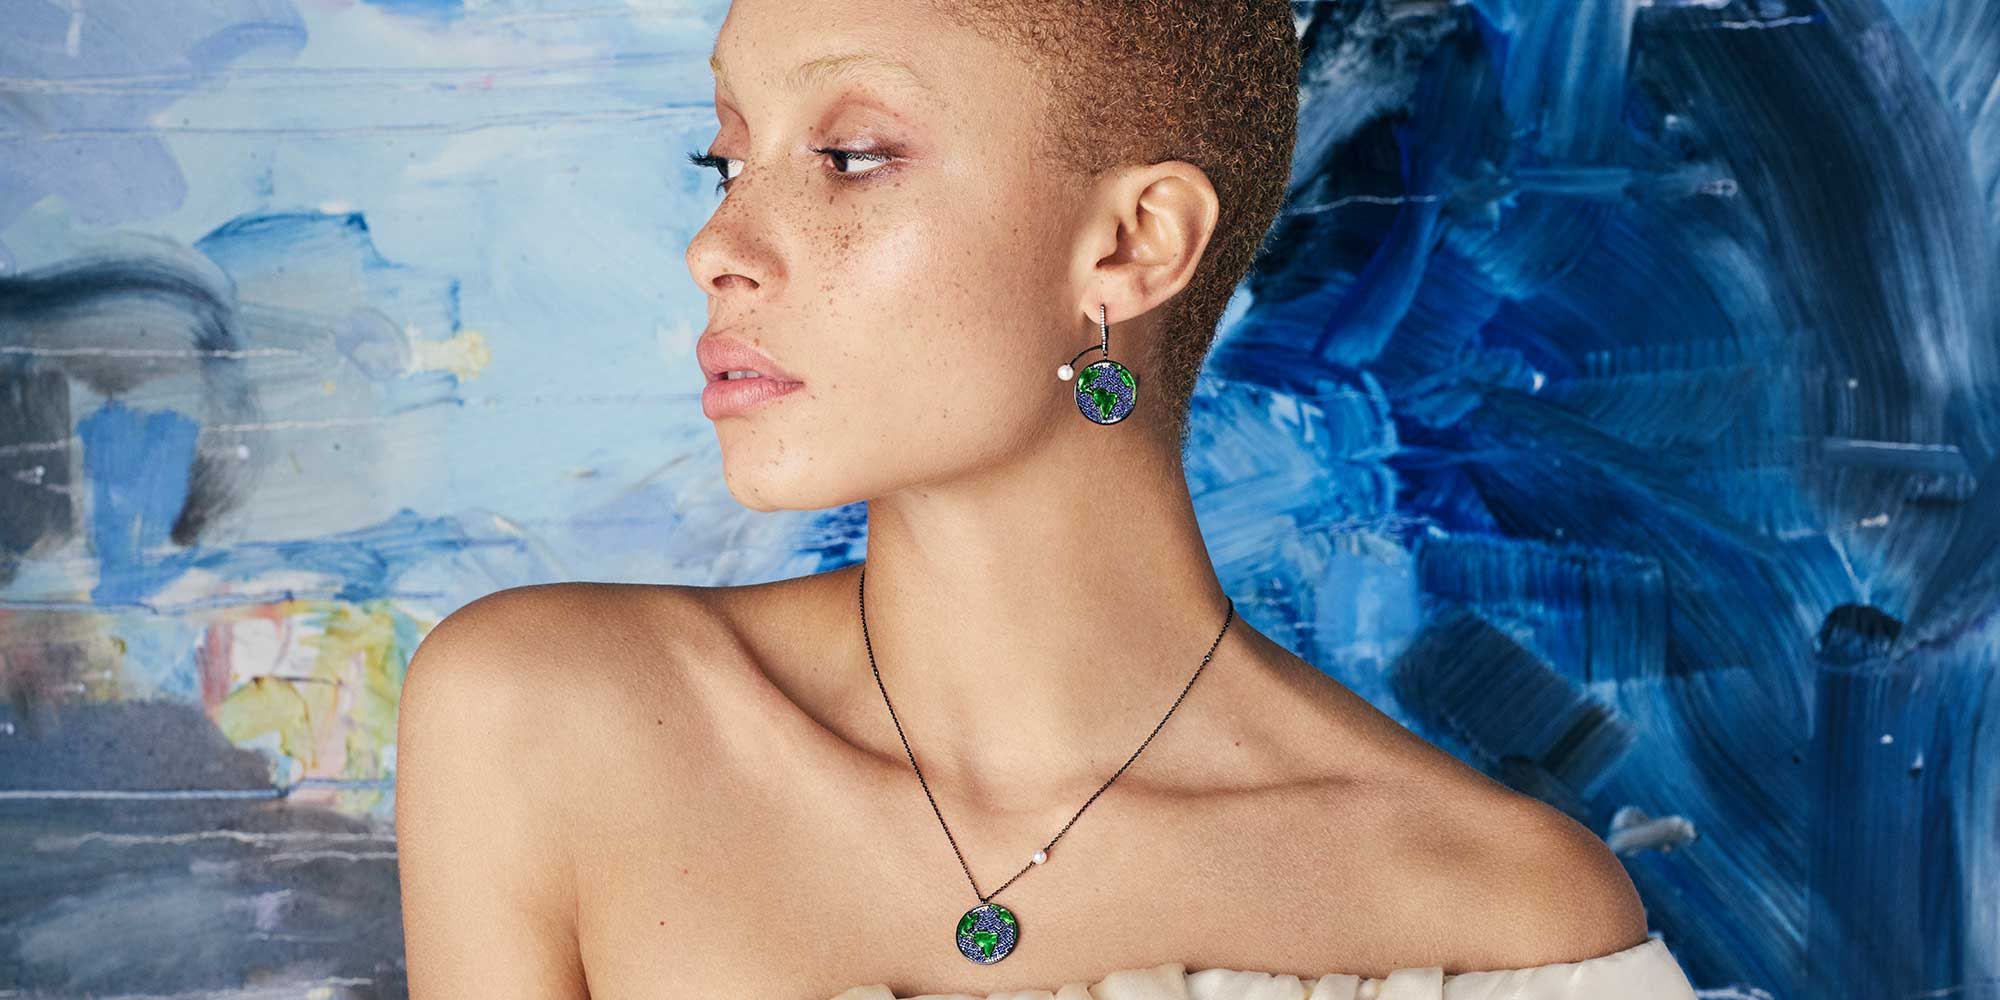 Adwoa Aboah wearing pieces from the Astronomy collection